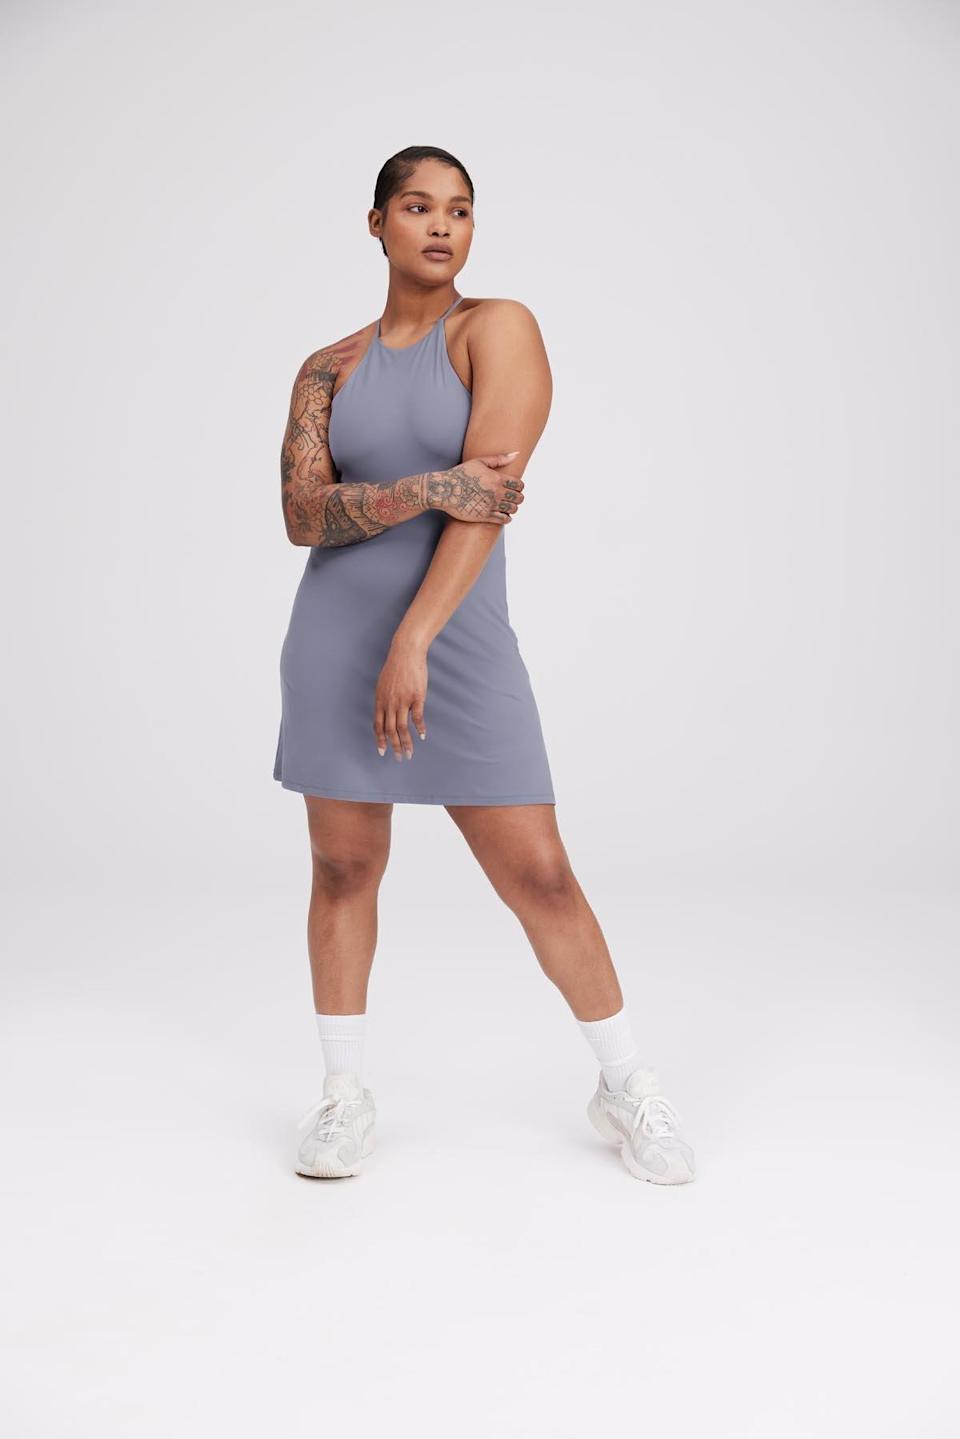 """<h2>Best Sustainable<br></h2><br><h3>Girlfriend Collective Sea Glass Undress<br></h3><br>This eco-option is made with 90% recycled plastic bottles (RPET) and 10% spandex — and features some of the most stylish colorways we've seen in a minute. (No wonder it's nearly sold out!)<br><br><strong>What They're Saying:</strong> """"This has become my go-to summer dress. It's perfect for date nights or running around town. I love to pair it with a denim jacket and sneakers. It is so comfortable and the Float material is great at absorbing sweat on hot days.""""<br><br><strong>Girlfriend Collective</strong> Sea Glass Undress, $, available at <a href=""""https://go.skimresources.com/?id=30283X879131&url=https%3A%2F%2Fwww.girlfriend.com%2Fcollections%2Funitards-dresses%2Fproducts%2Fsea-glass-undress%3Fvariant%3D39281862770751"""" rel=""""nofollow noopener"""" target=""""_blank"""" data-ylk=""""slk:Girlfriend Collective"""" class=""""link rapid-noclick-resp"""">Girlfriend Collective</a>"""